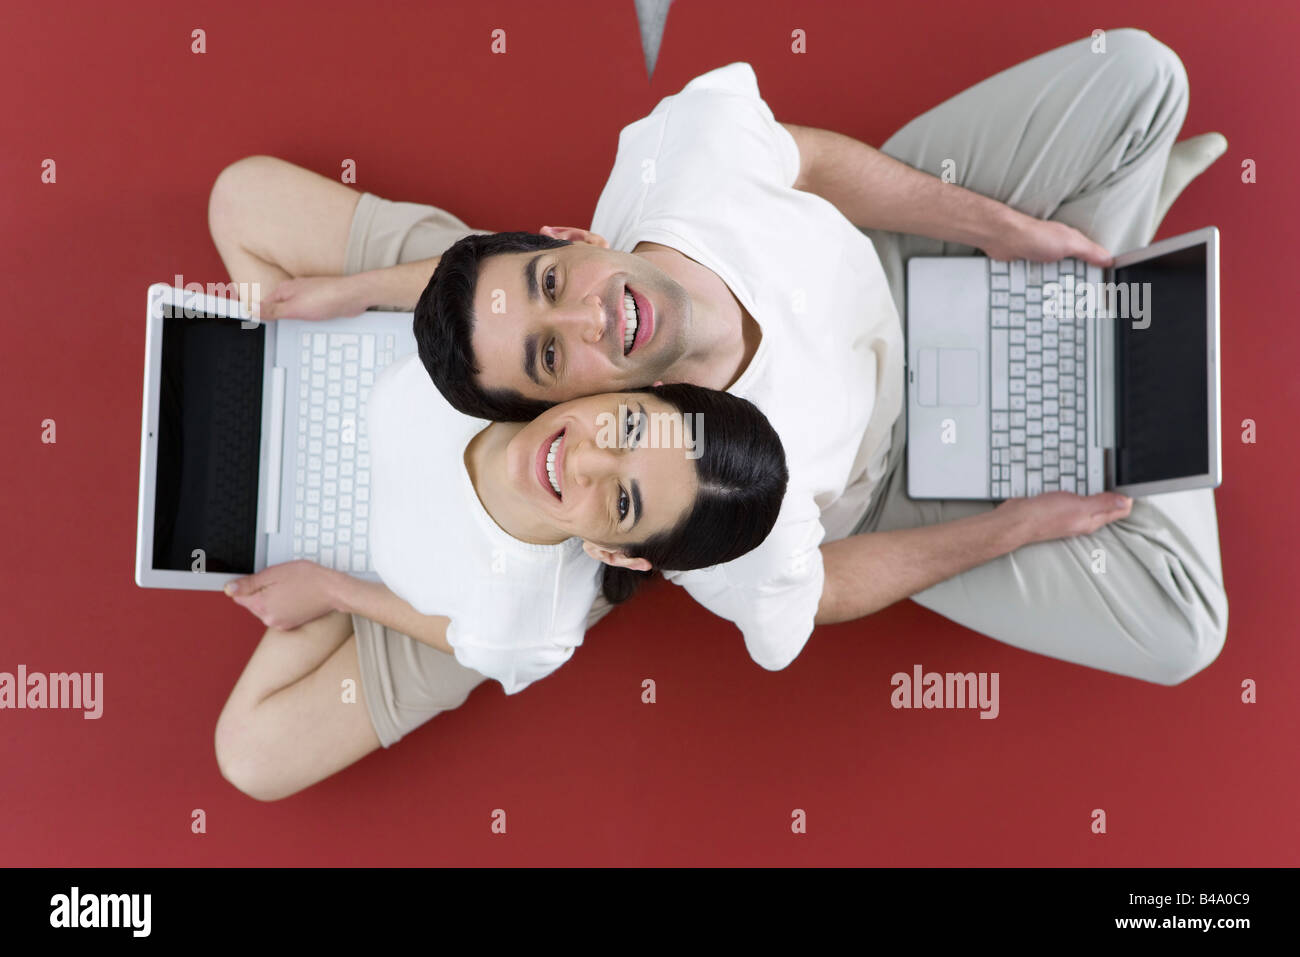 Couple sitting back to back on the ground, holding laptop computers, smiling up at camera - Stock Image